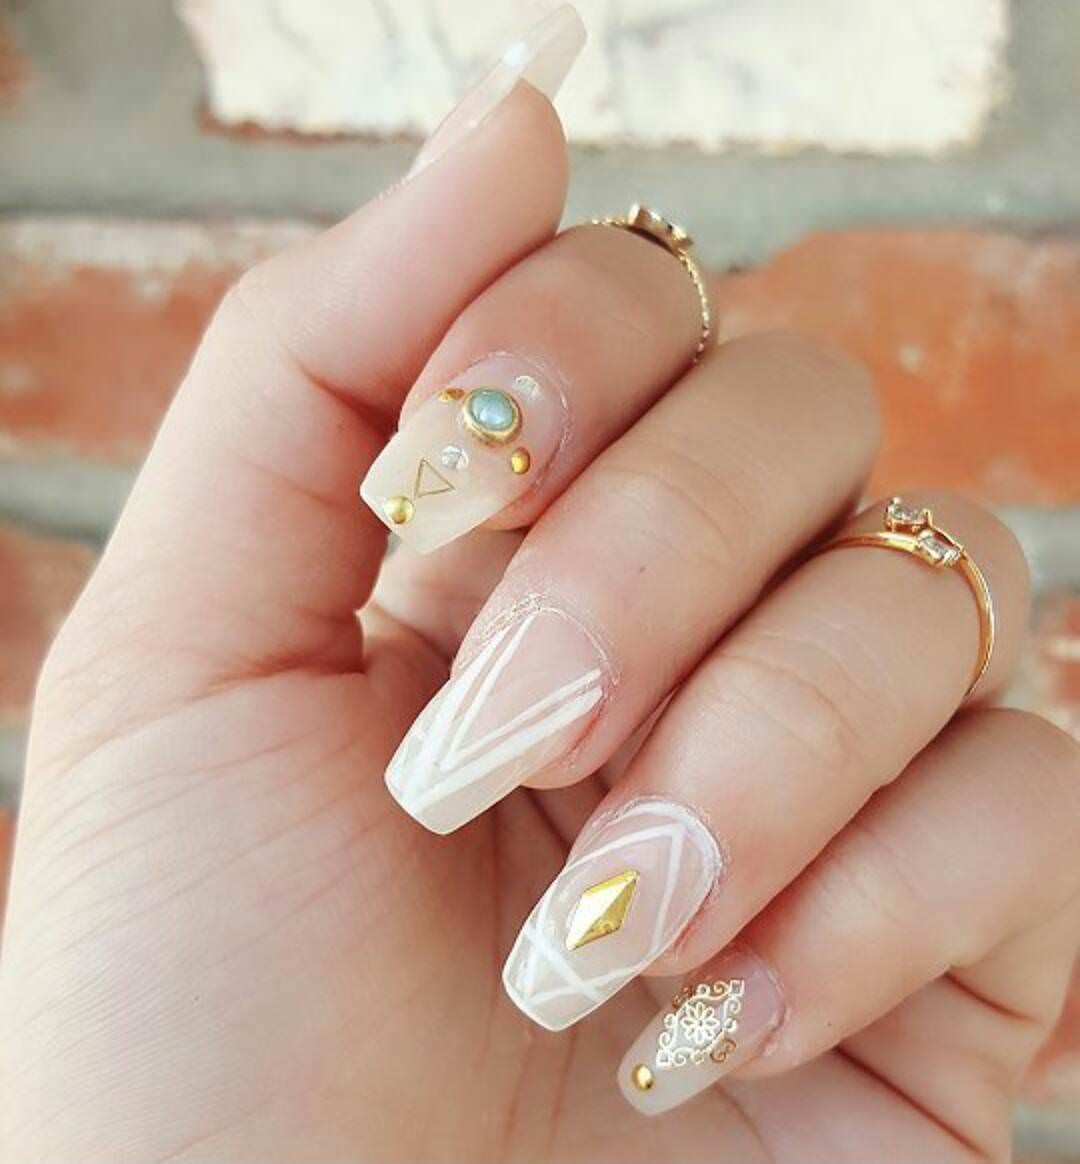 Bio Sculpture Gel #SkinCareProductsThatWork Gel French Manicure, French  Nails, Gel Manicure, Nail